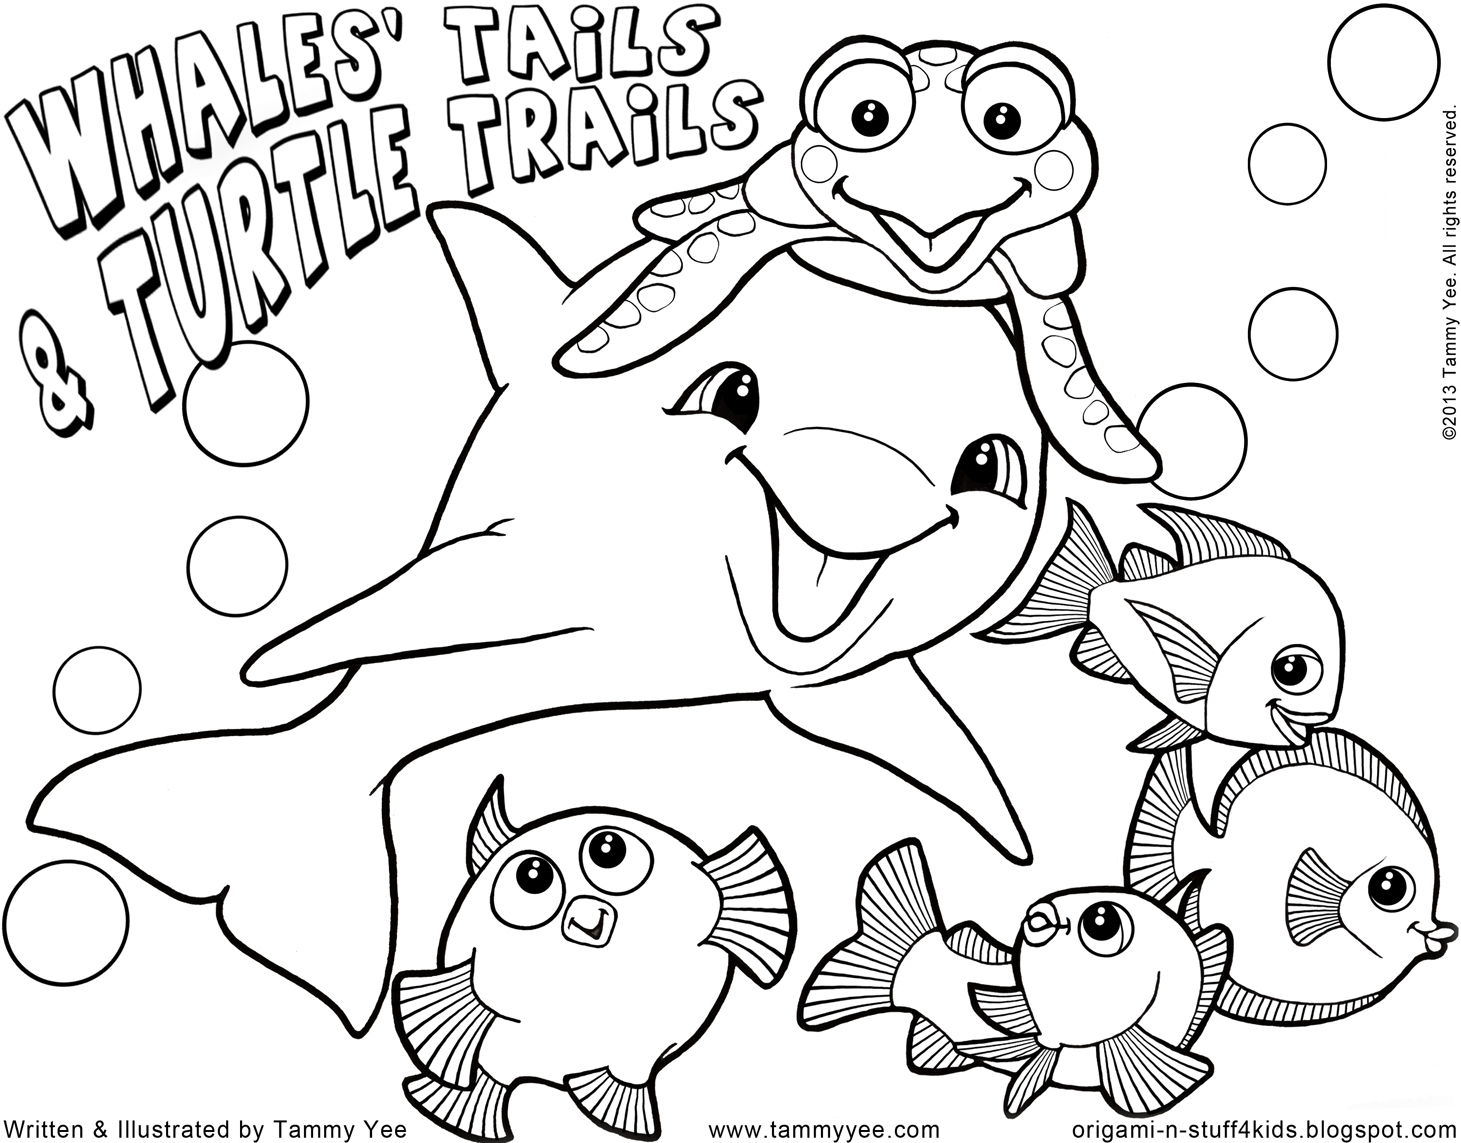 Origami N' Stuff 4 Kids: Coloring For Kids: Whales' Tails